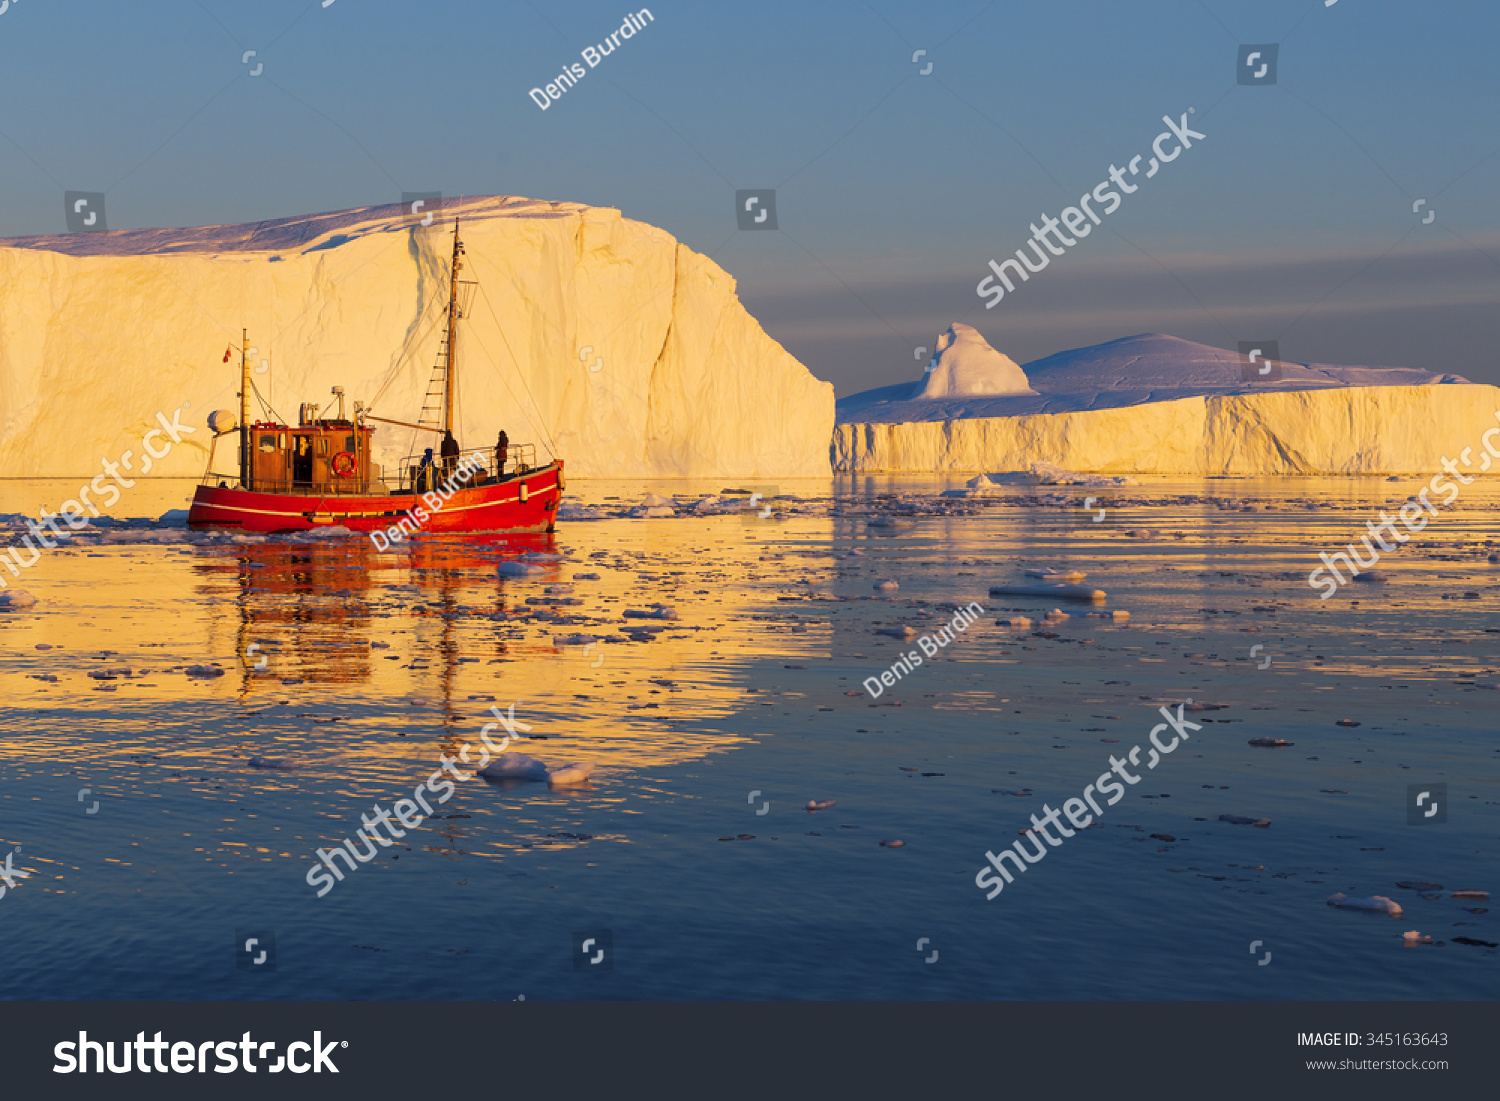 Nature and landscapes of Greenland Travel on the scientific vessel among ices Studying of a phenomenon of global warming Ices and icebergs of unusual forms and colors